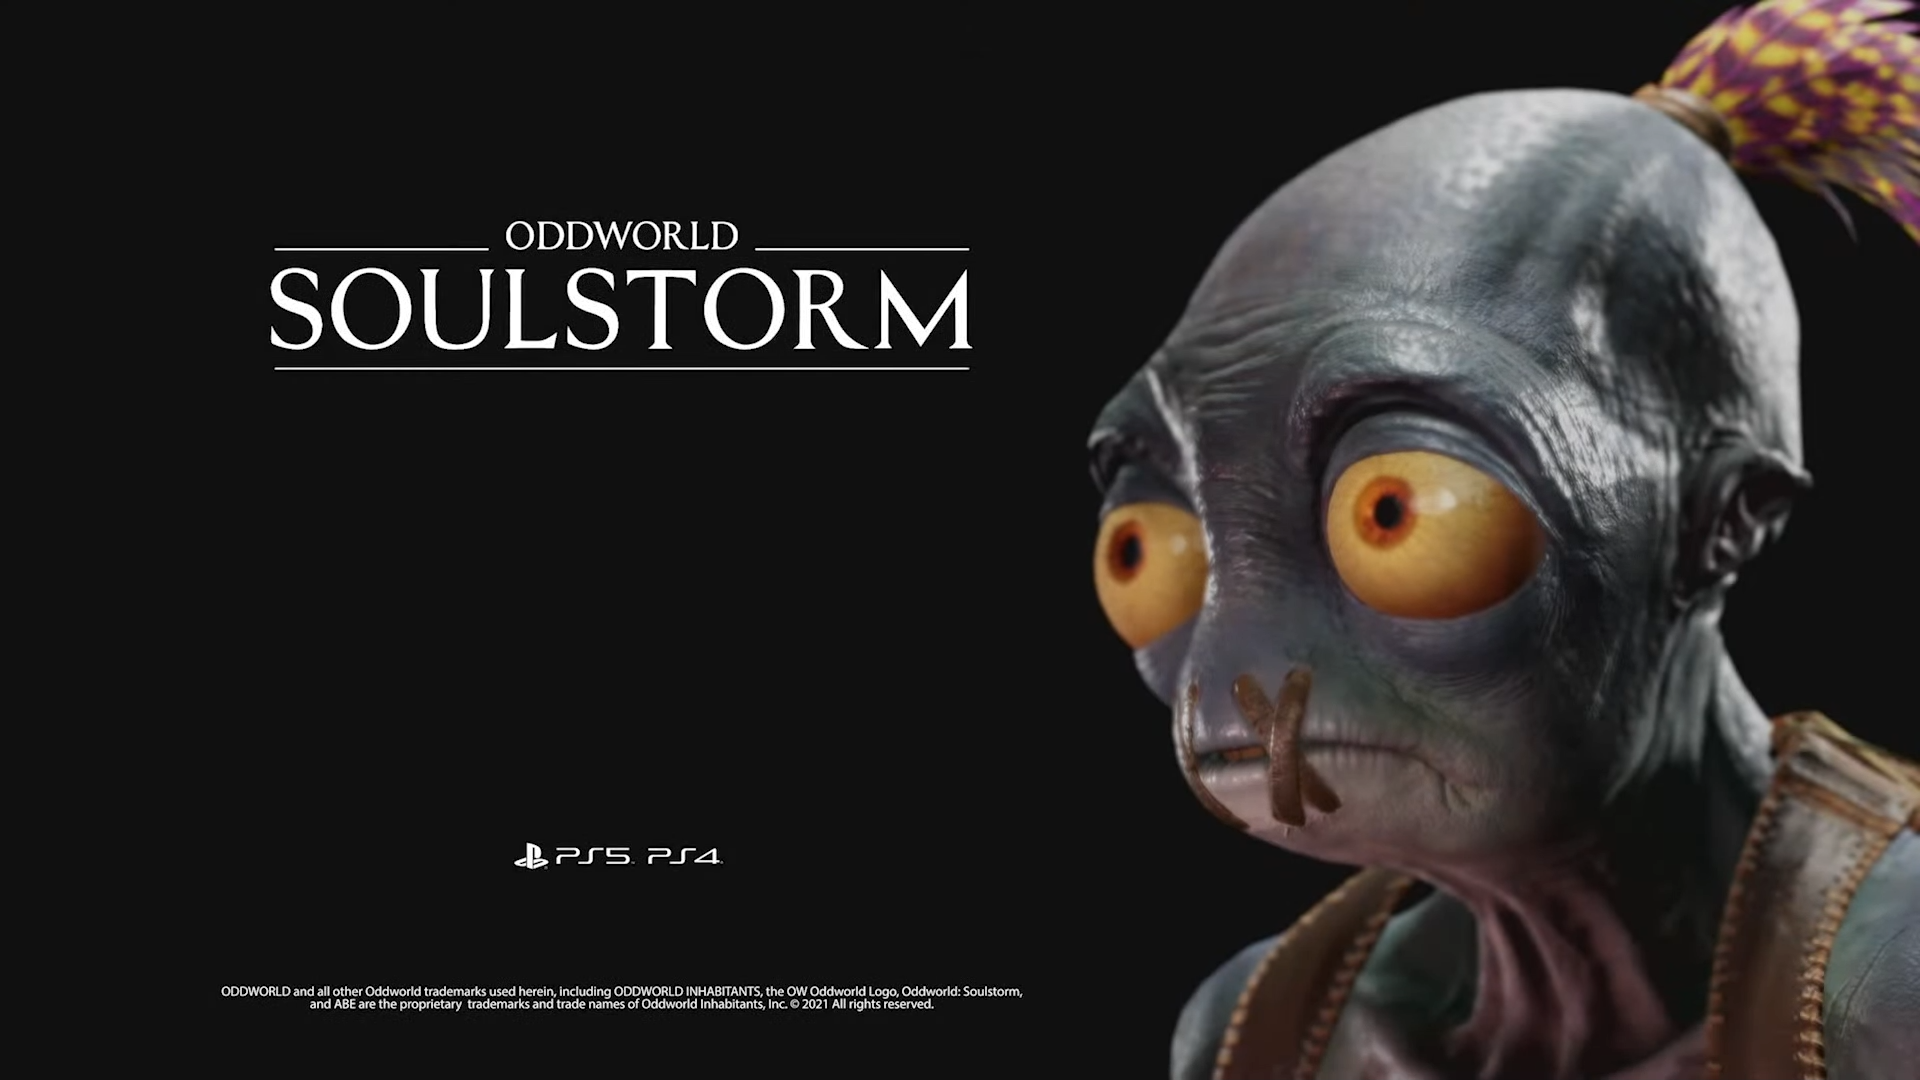 Our First Real Look at Oddworld Soulstorm and a Release Date